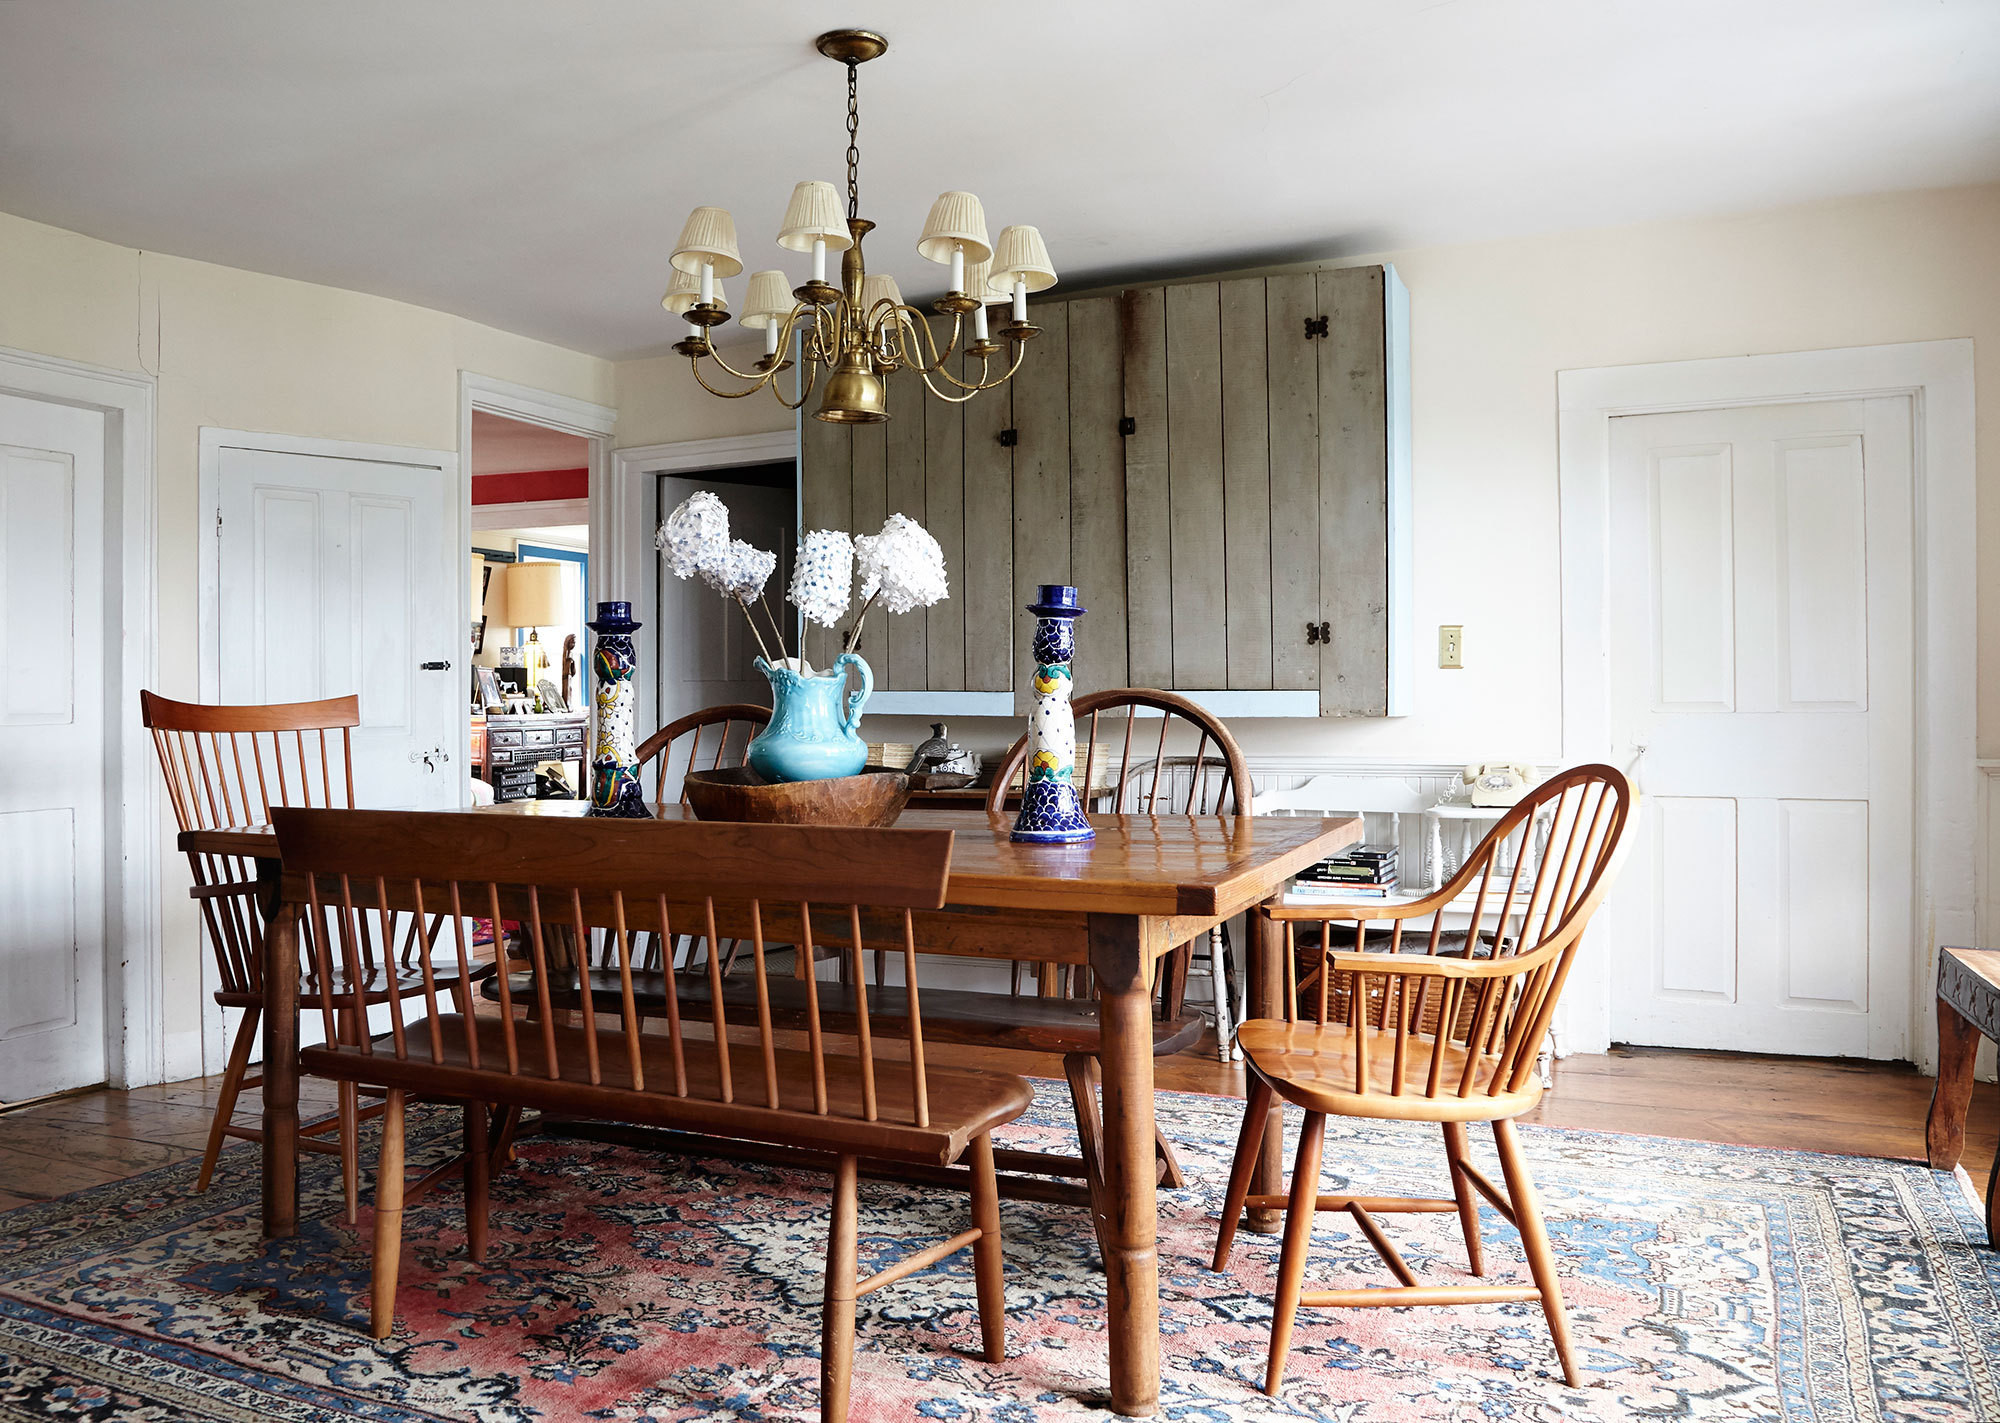 The familyu0027s dining room features Shaker style seating